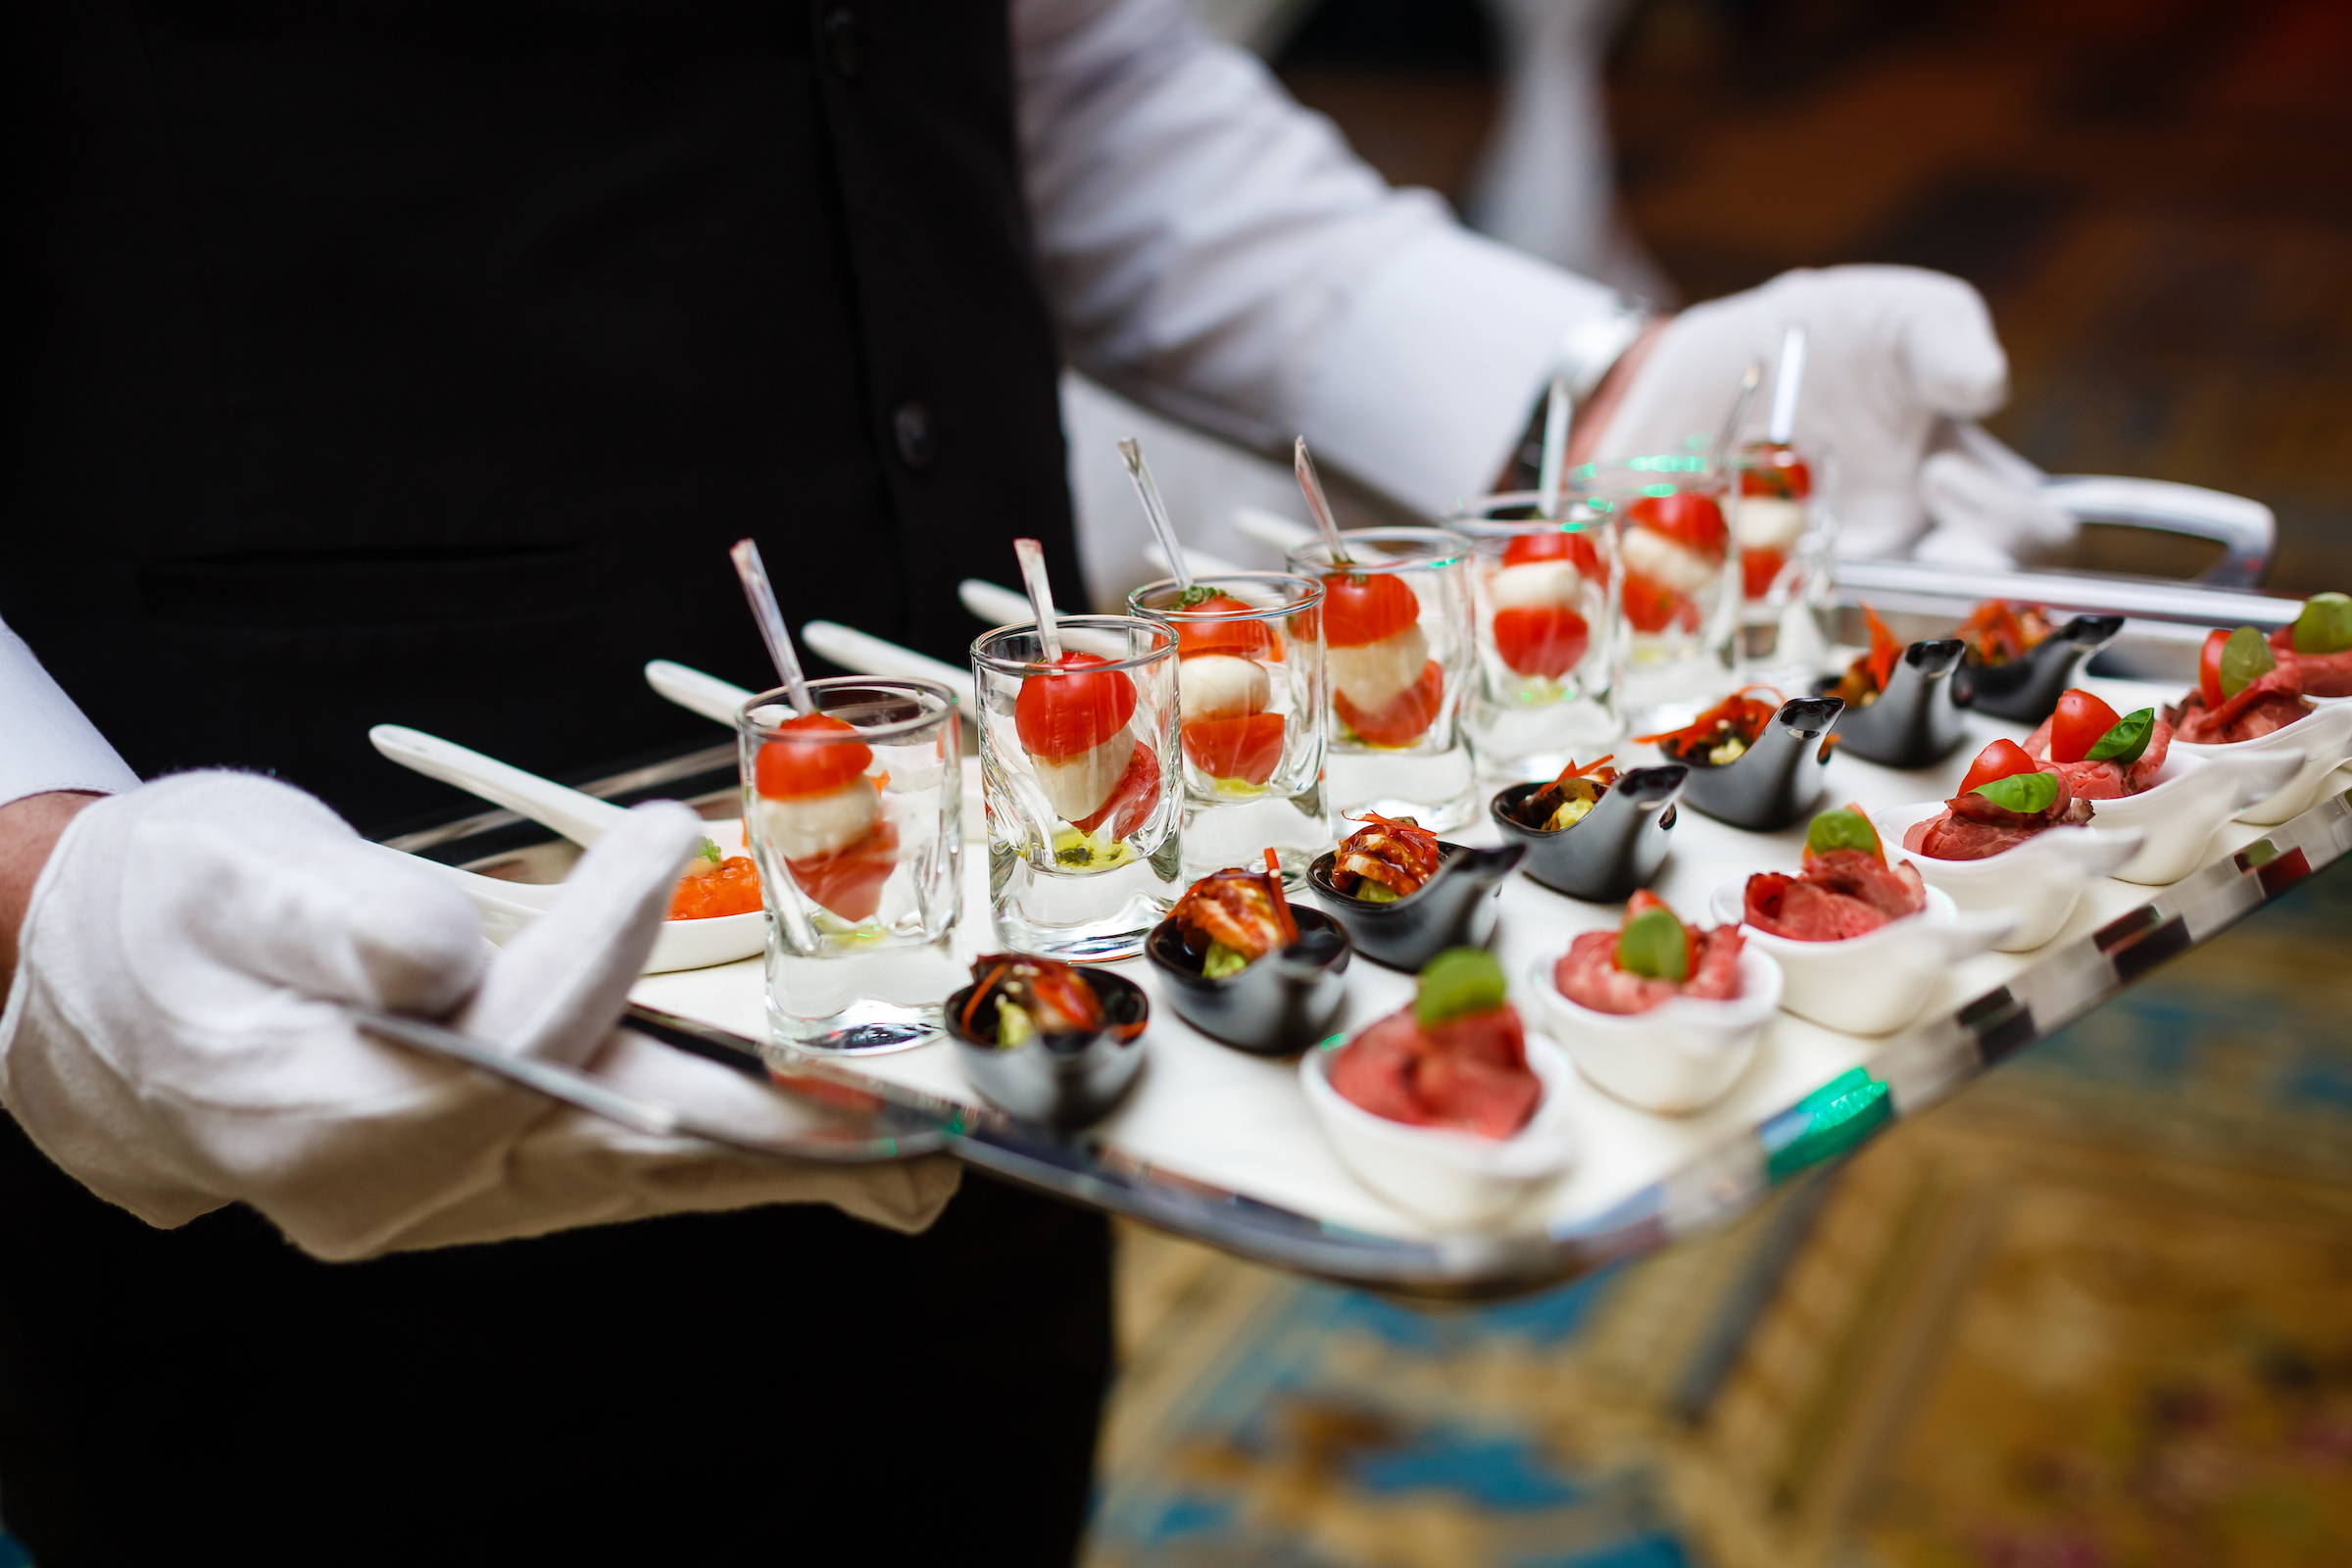 What's the Best Way to Serve Food at an Event?